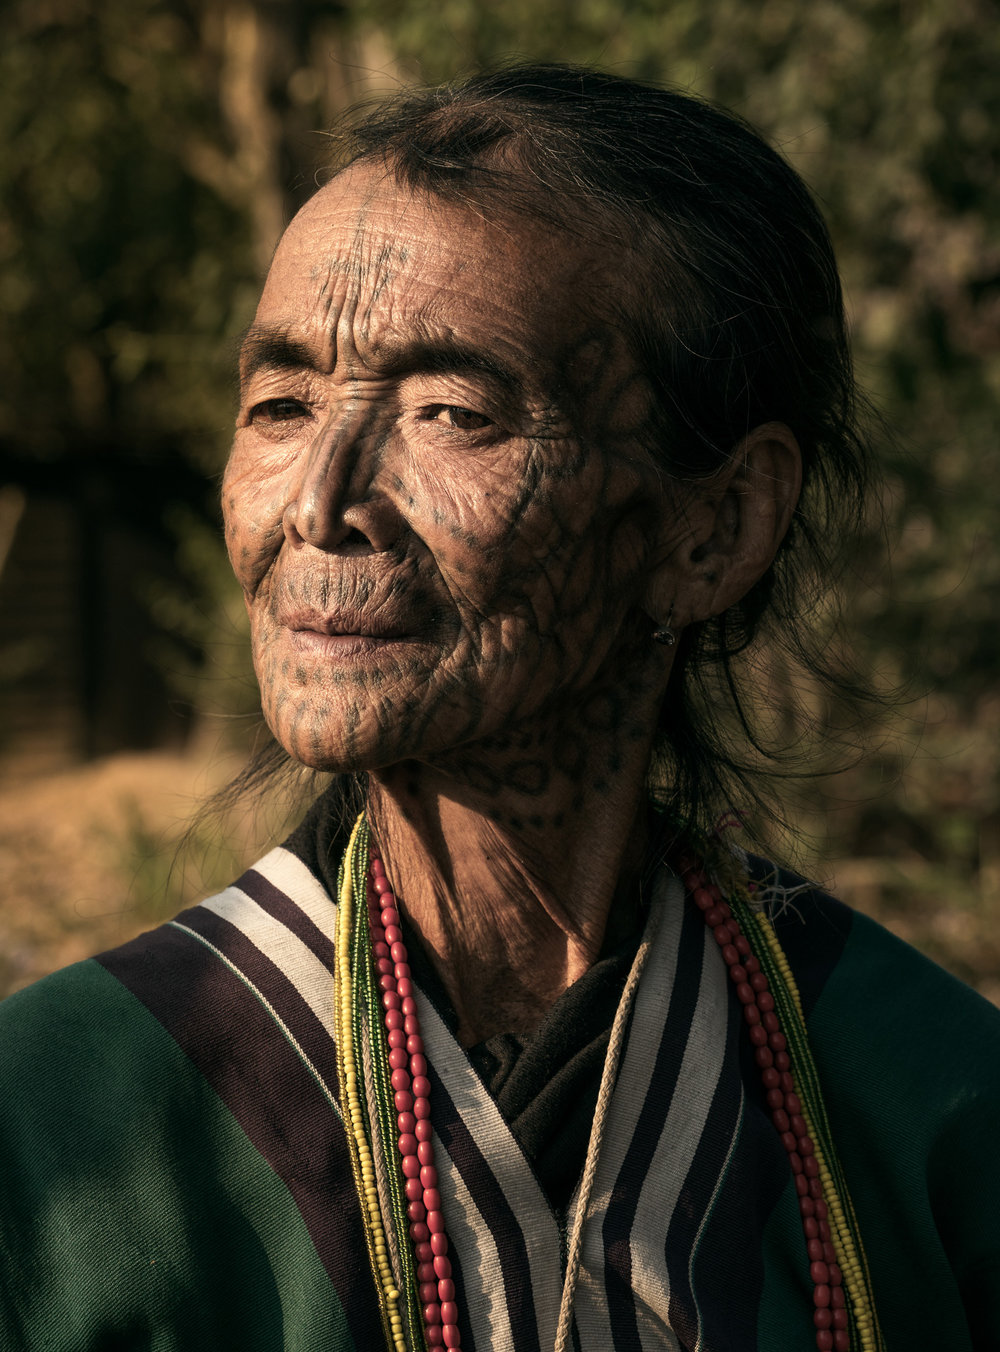 chin woman in myanmar